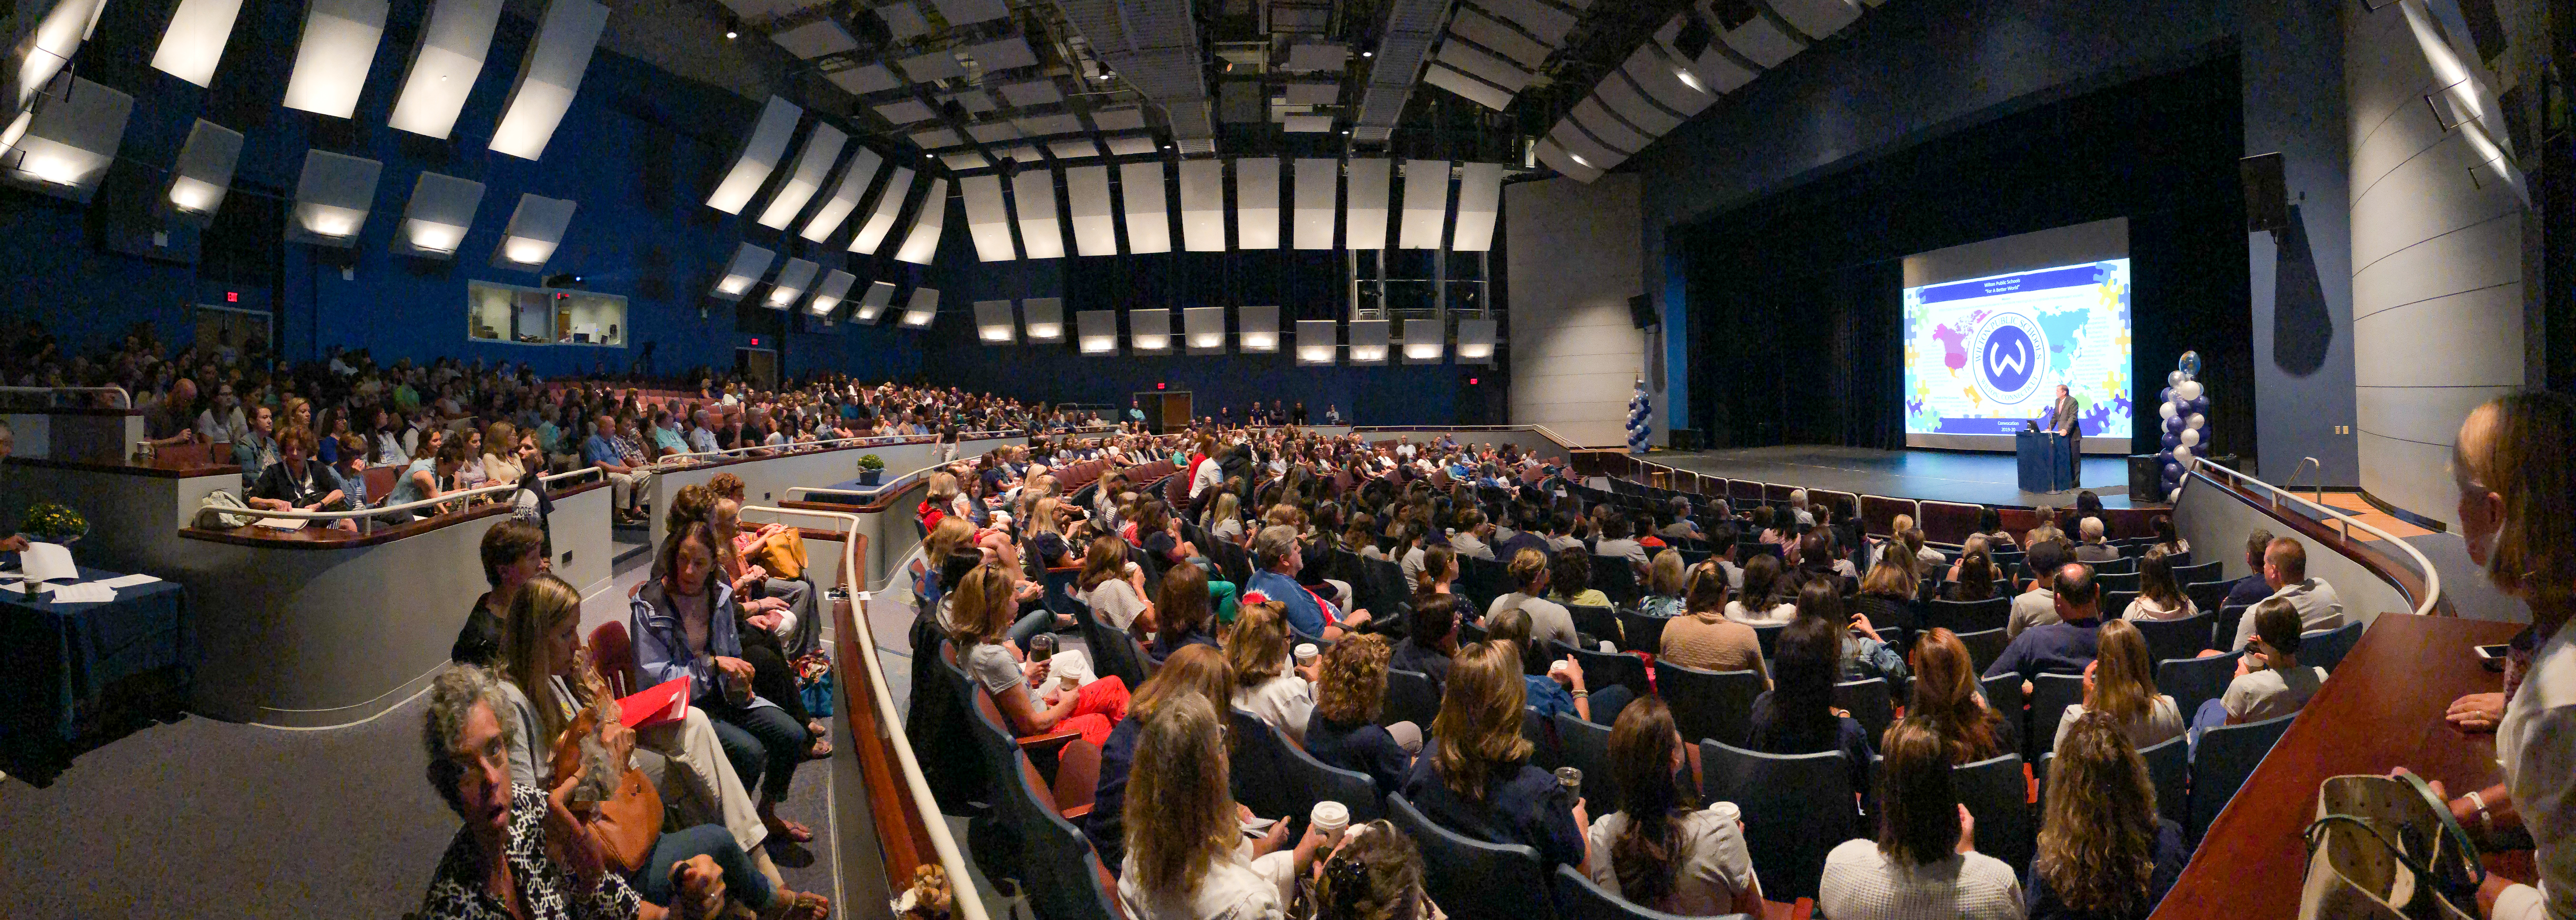 Clune Center for convocation